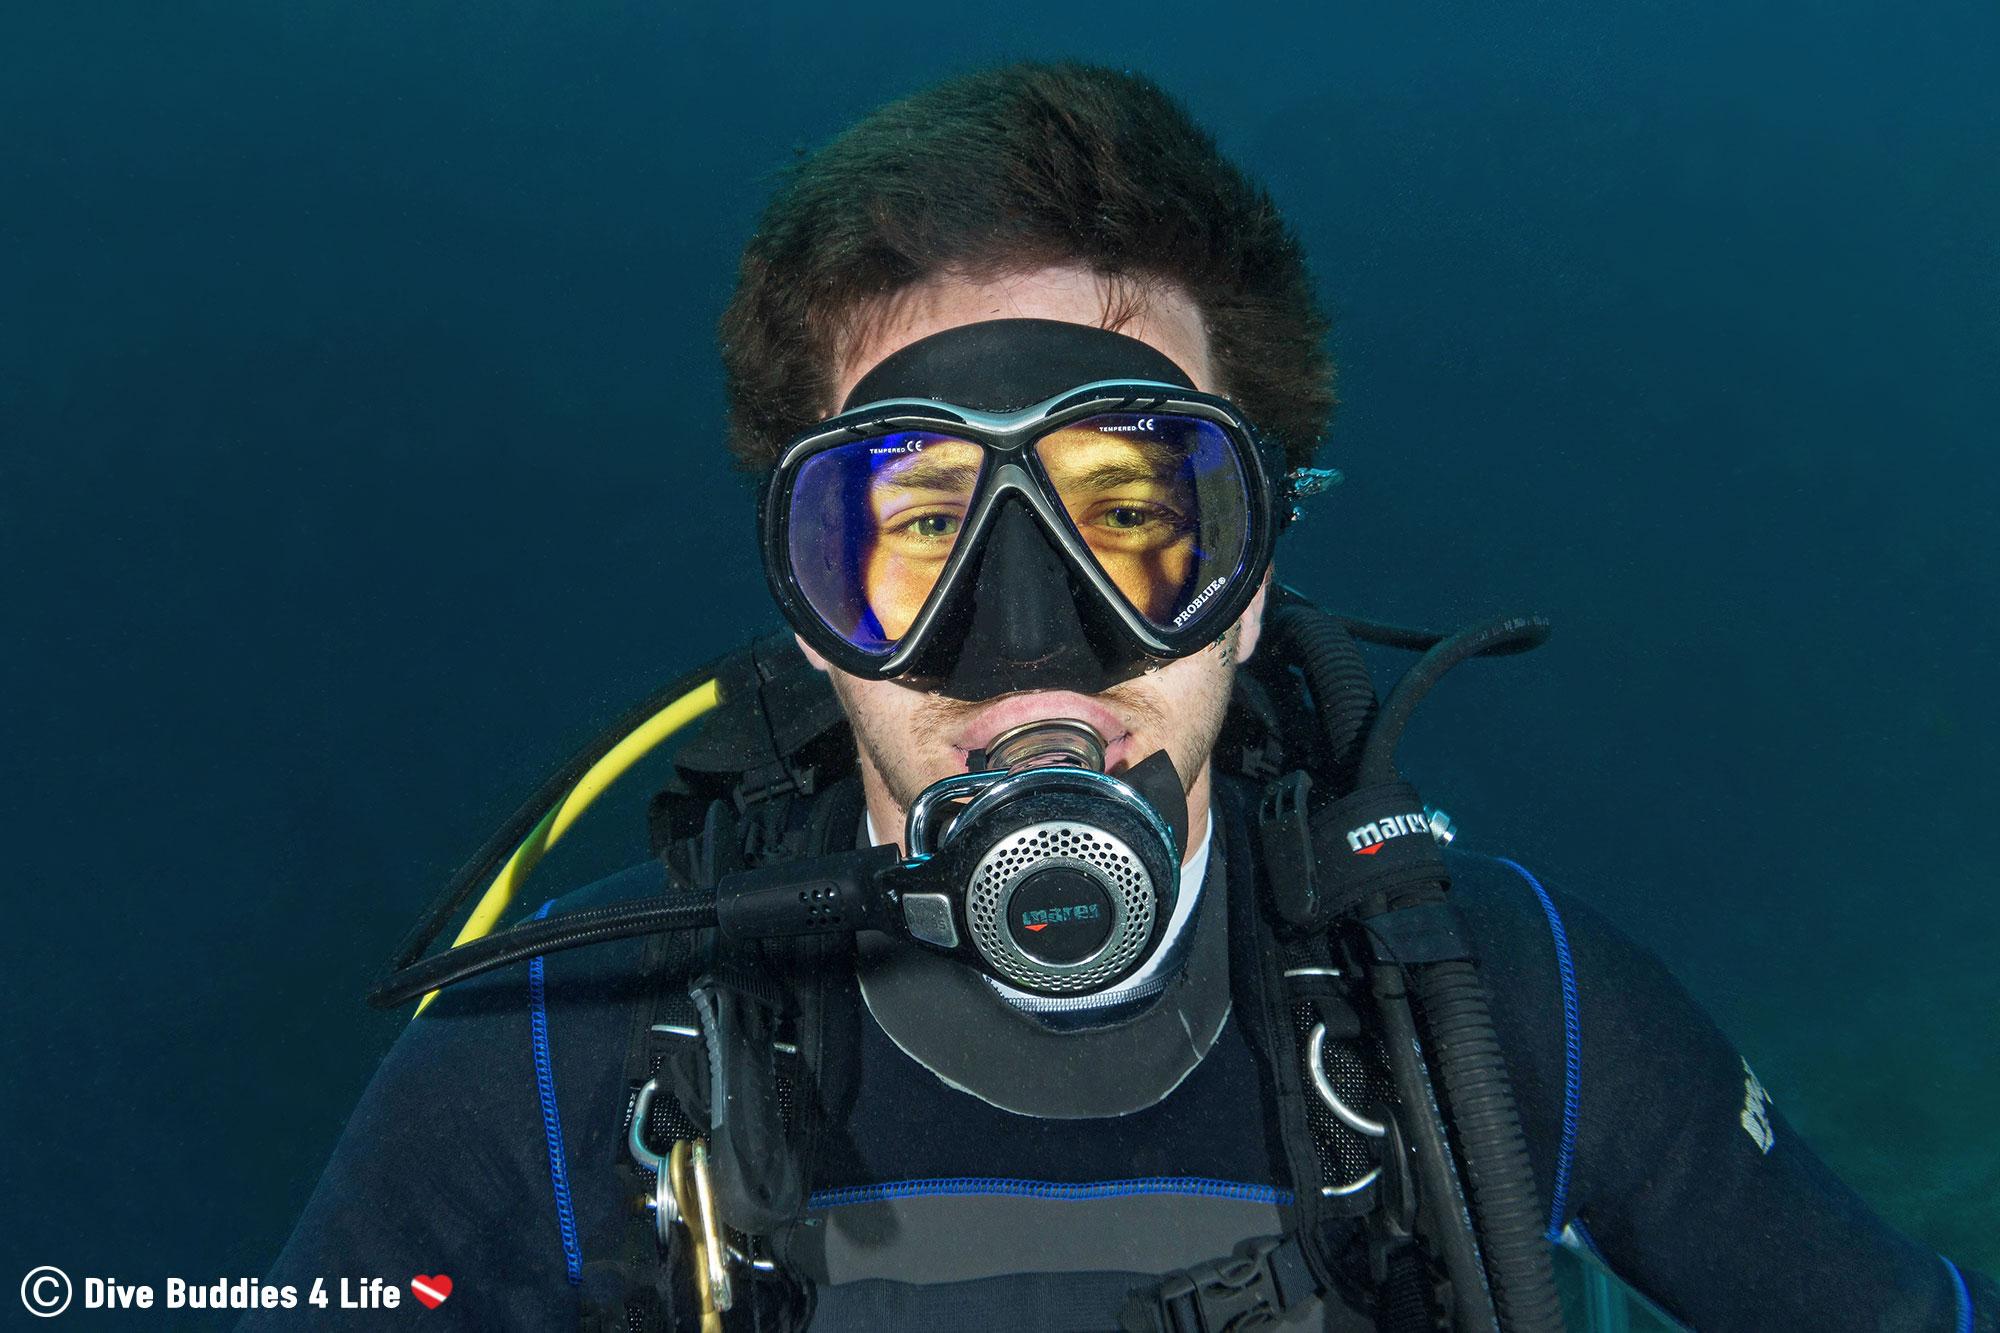 Joey Smiling Into His Regulator While Scuba Diving Because His Short Hair Isn't In His Face